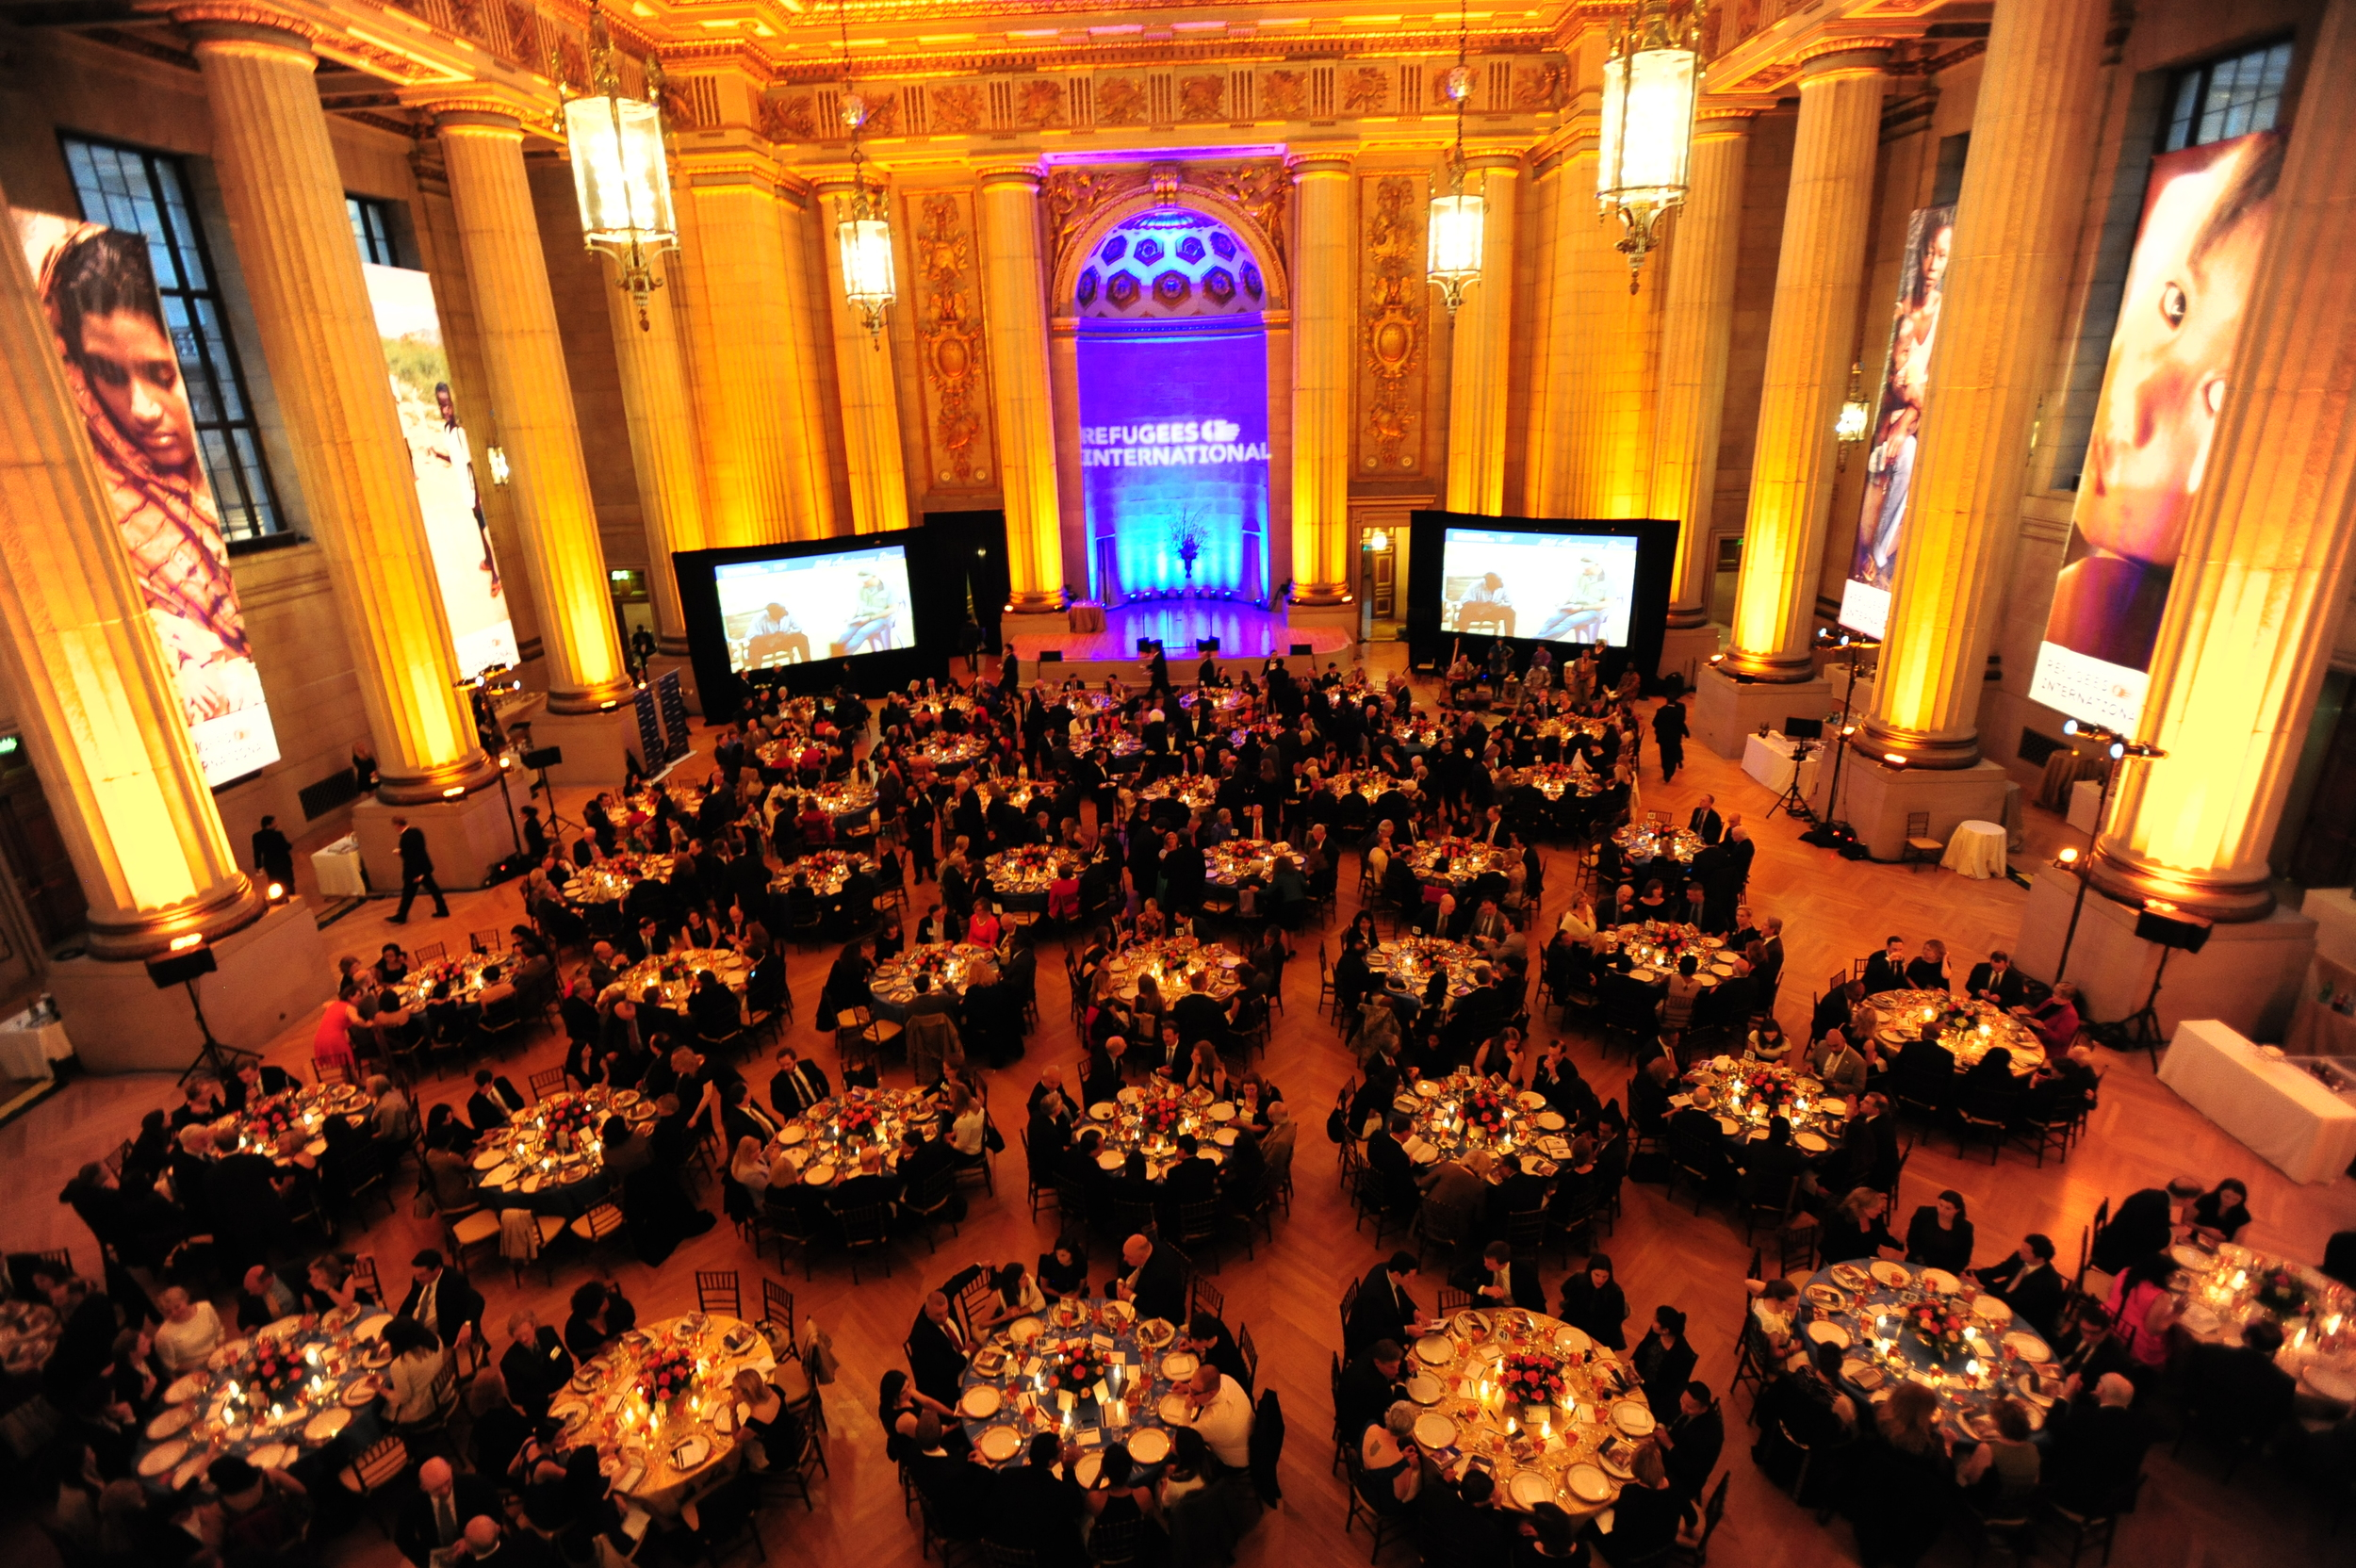 Overview of the dinner at the Andrew W. Mellon Auditorium